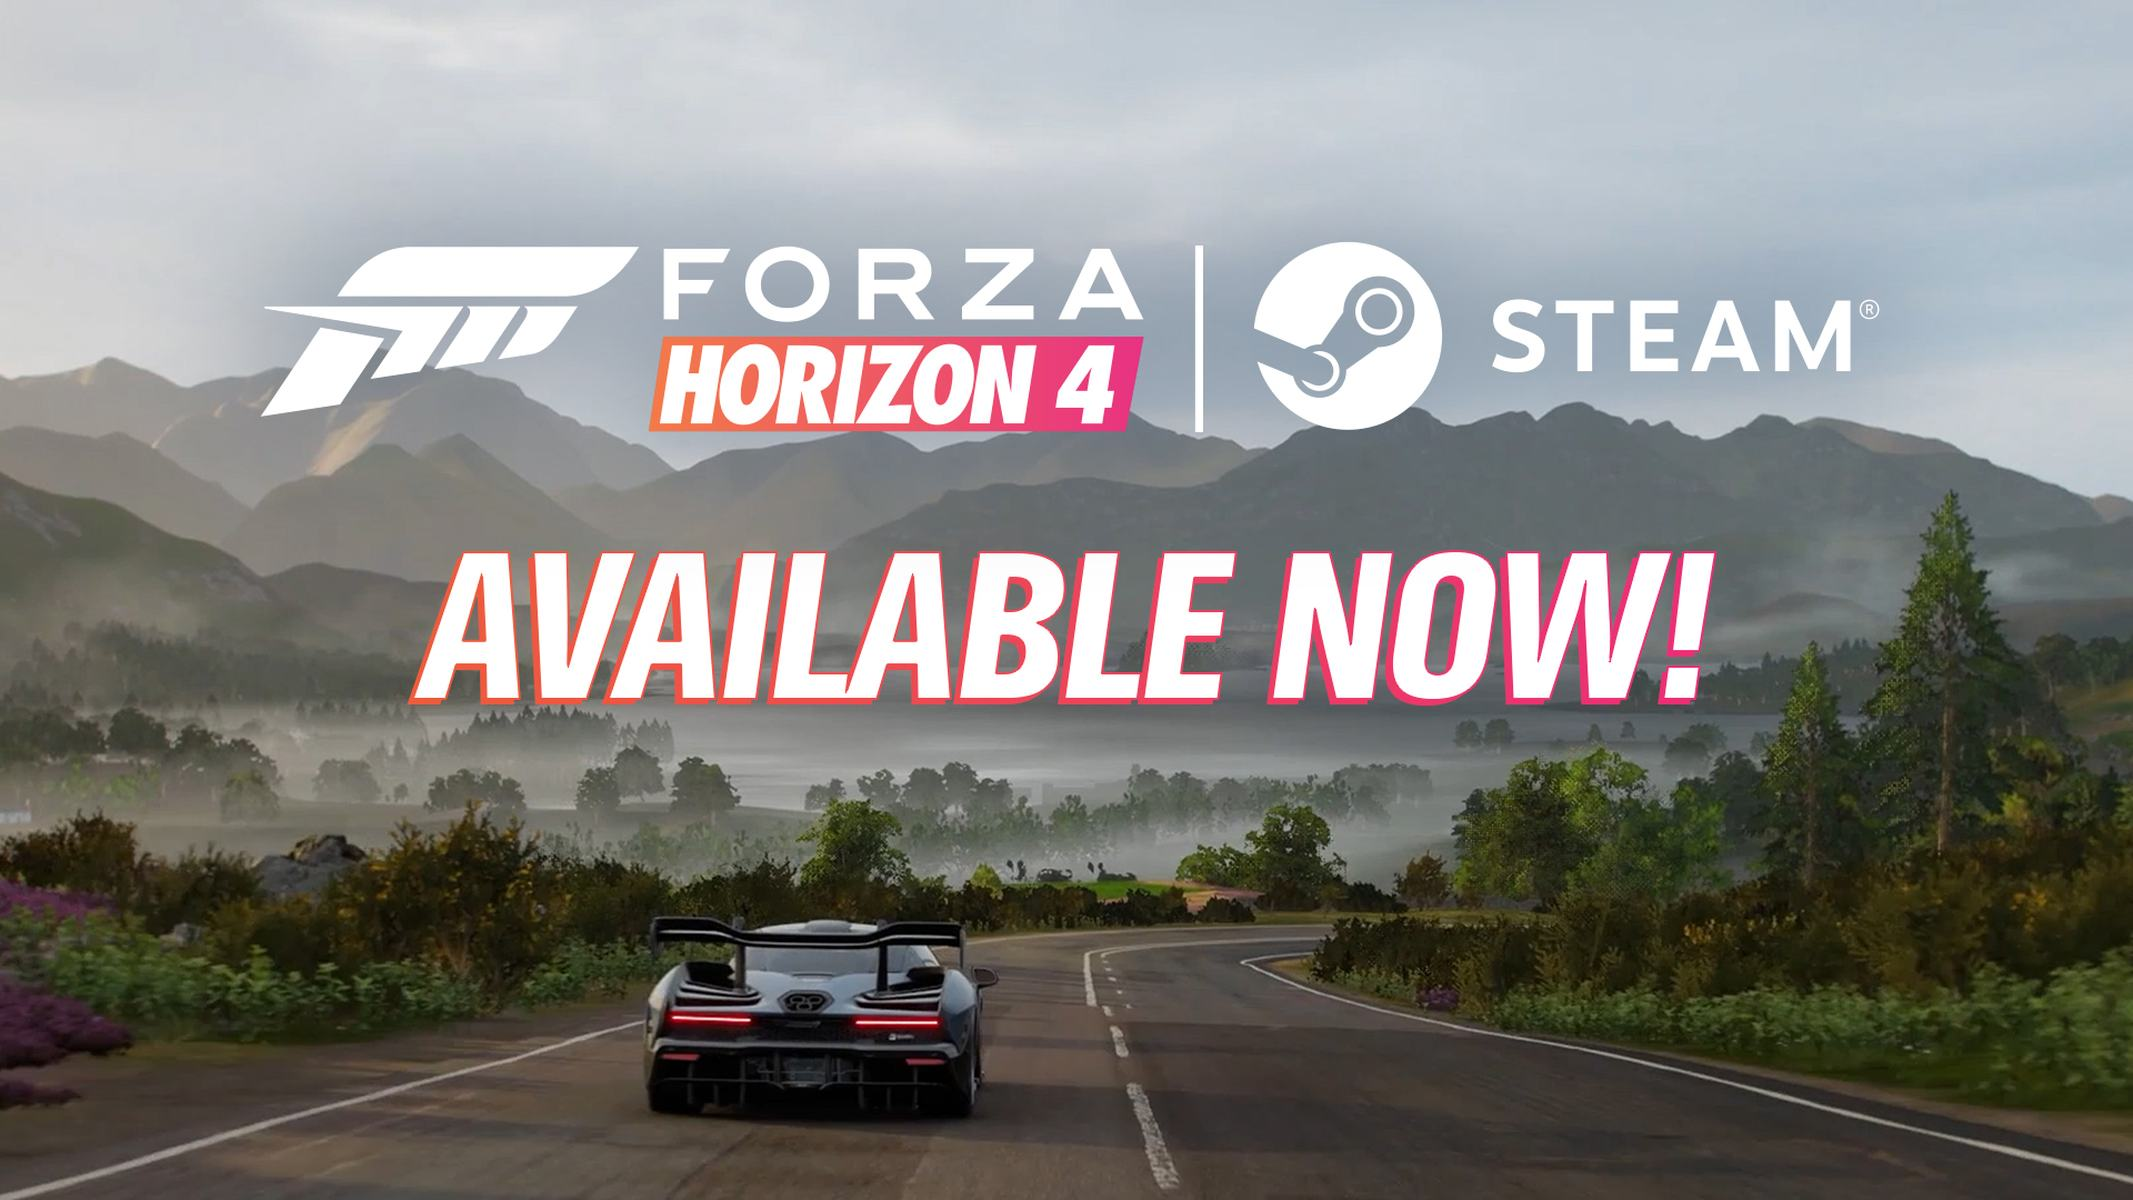 Forza Horizon 4 Steam